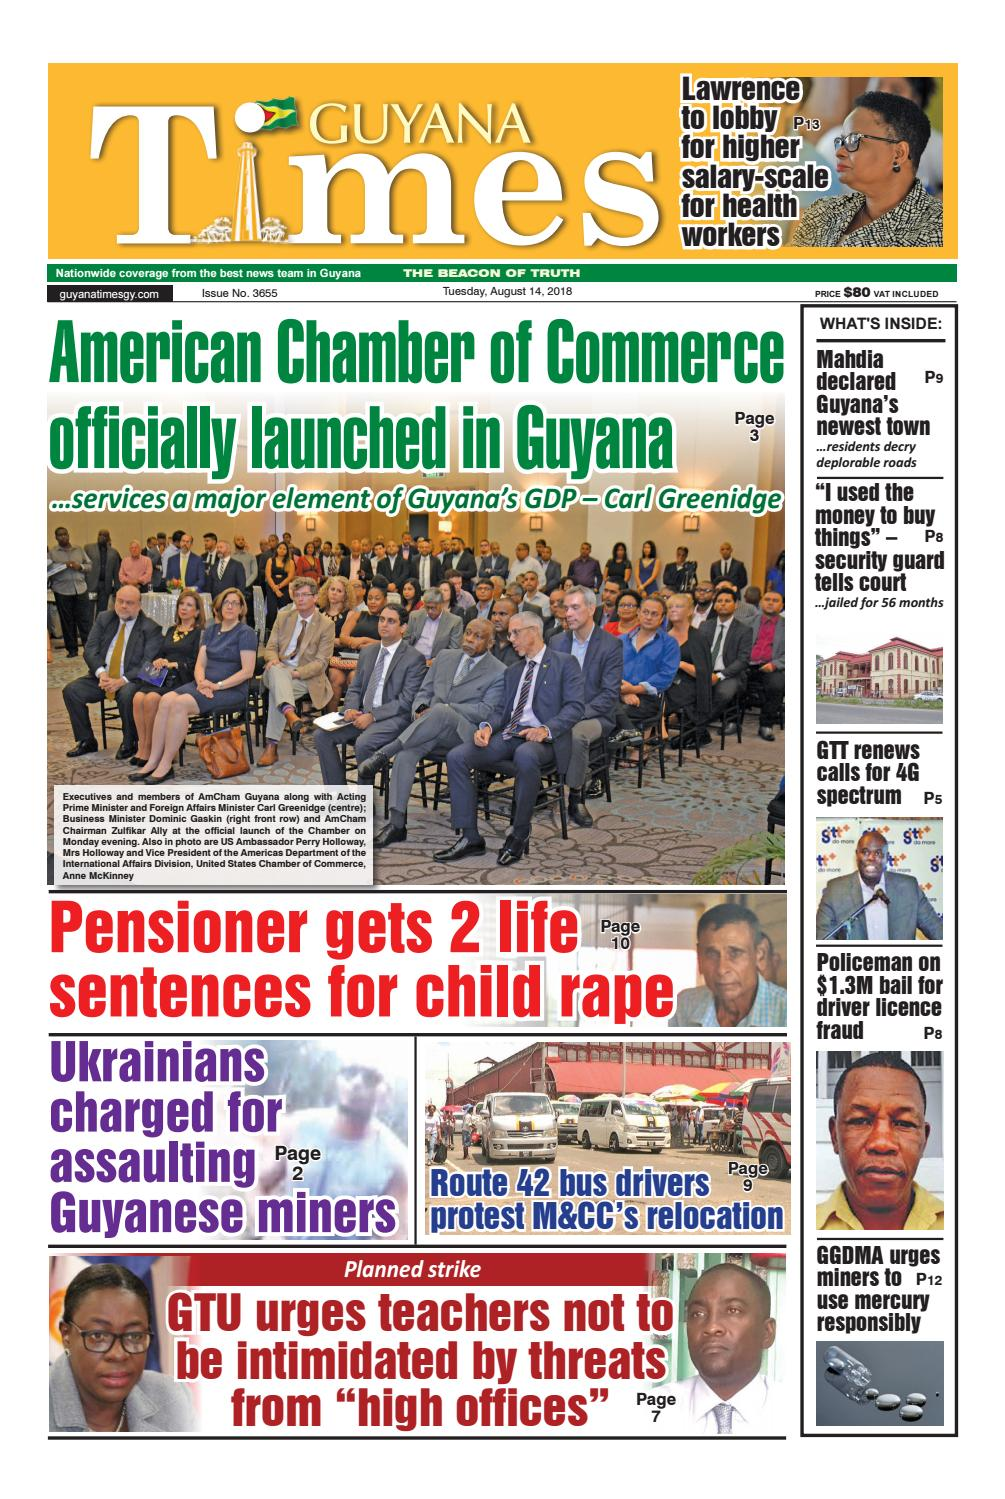 Guyana Times Epaper - Tuesday, August 14, 2018 by Gytimes - issuu